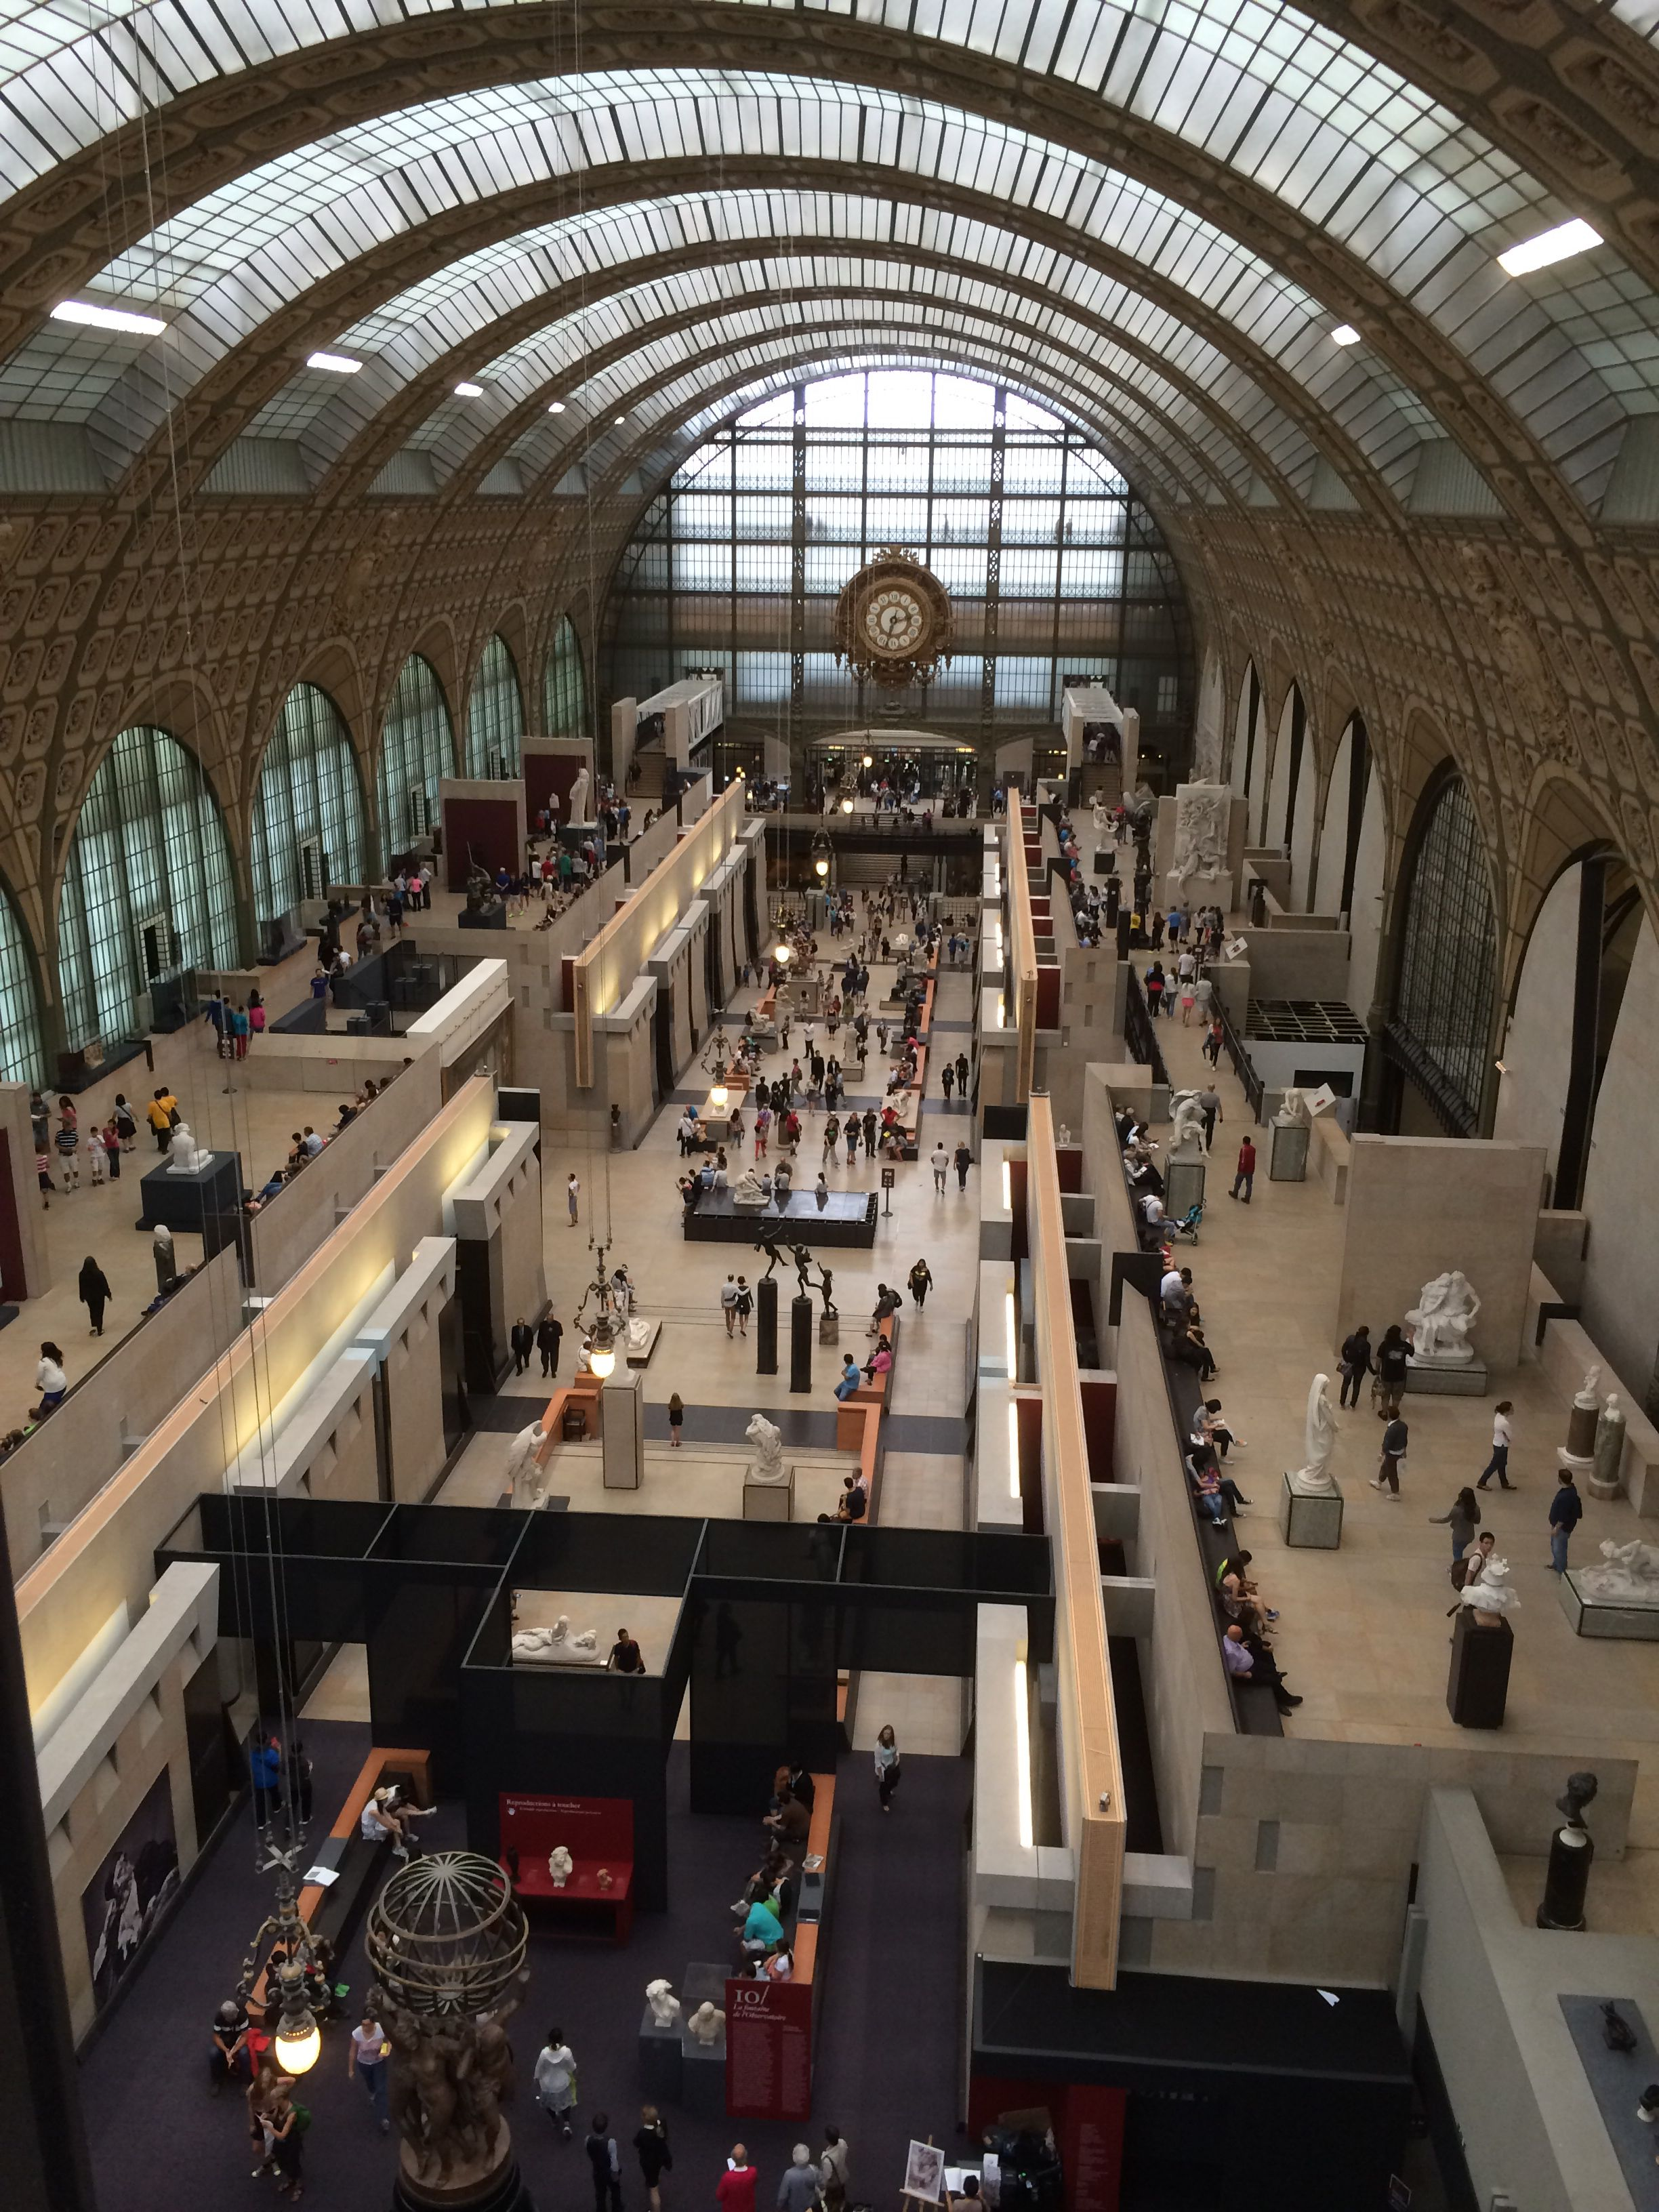 Musée d'Orsay (Interior) #france #paris #travel #museums #art #museedorsay #architecture